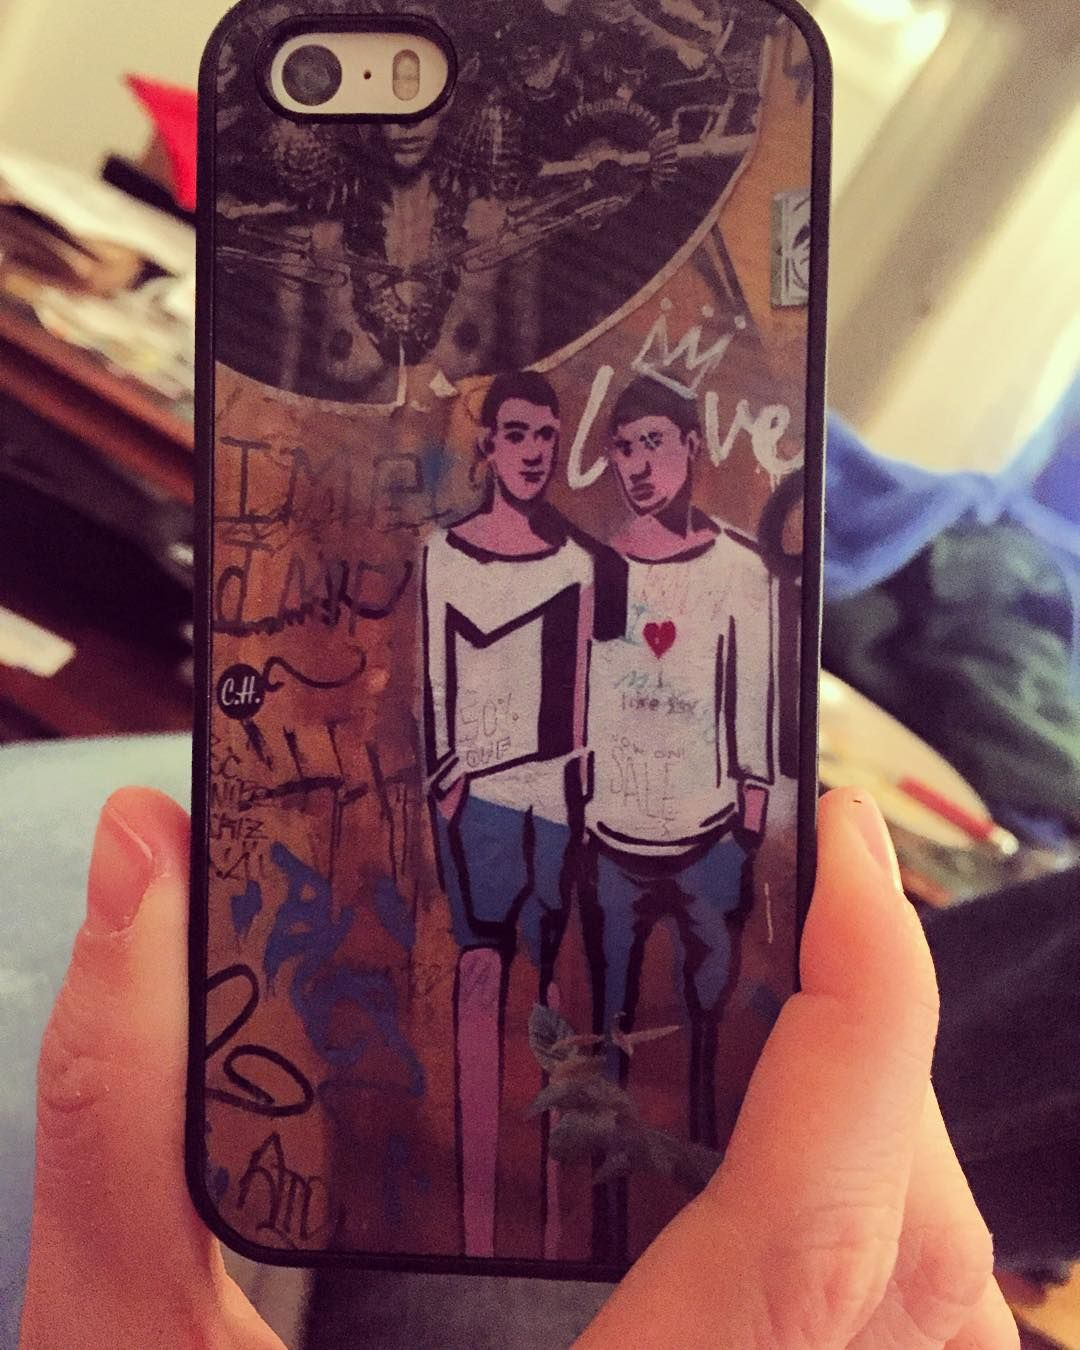 Got a $5 customized phone case thanks to a @groupon featuring @printer_pix. It's even rubberized for all the times I will inevitably drop my phone. The image is street art from @danbrooo and my trip to Berlin. -- #customize #phonecase #deal #berlin #germany #travel #vacation #memories #streetart #graffiti #art #chicagoblogger #windycitybloggers #chicago #chicagopics #chicagoart #chicagogram #blogger #lblogger #frugal #thrifty